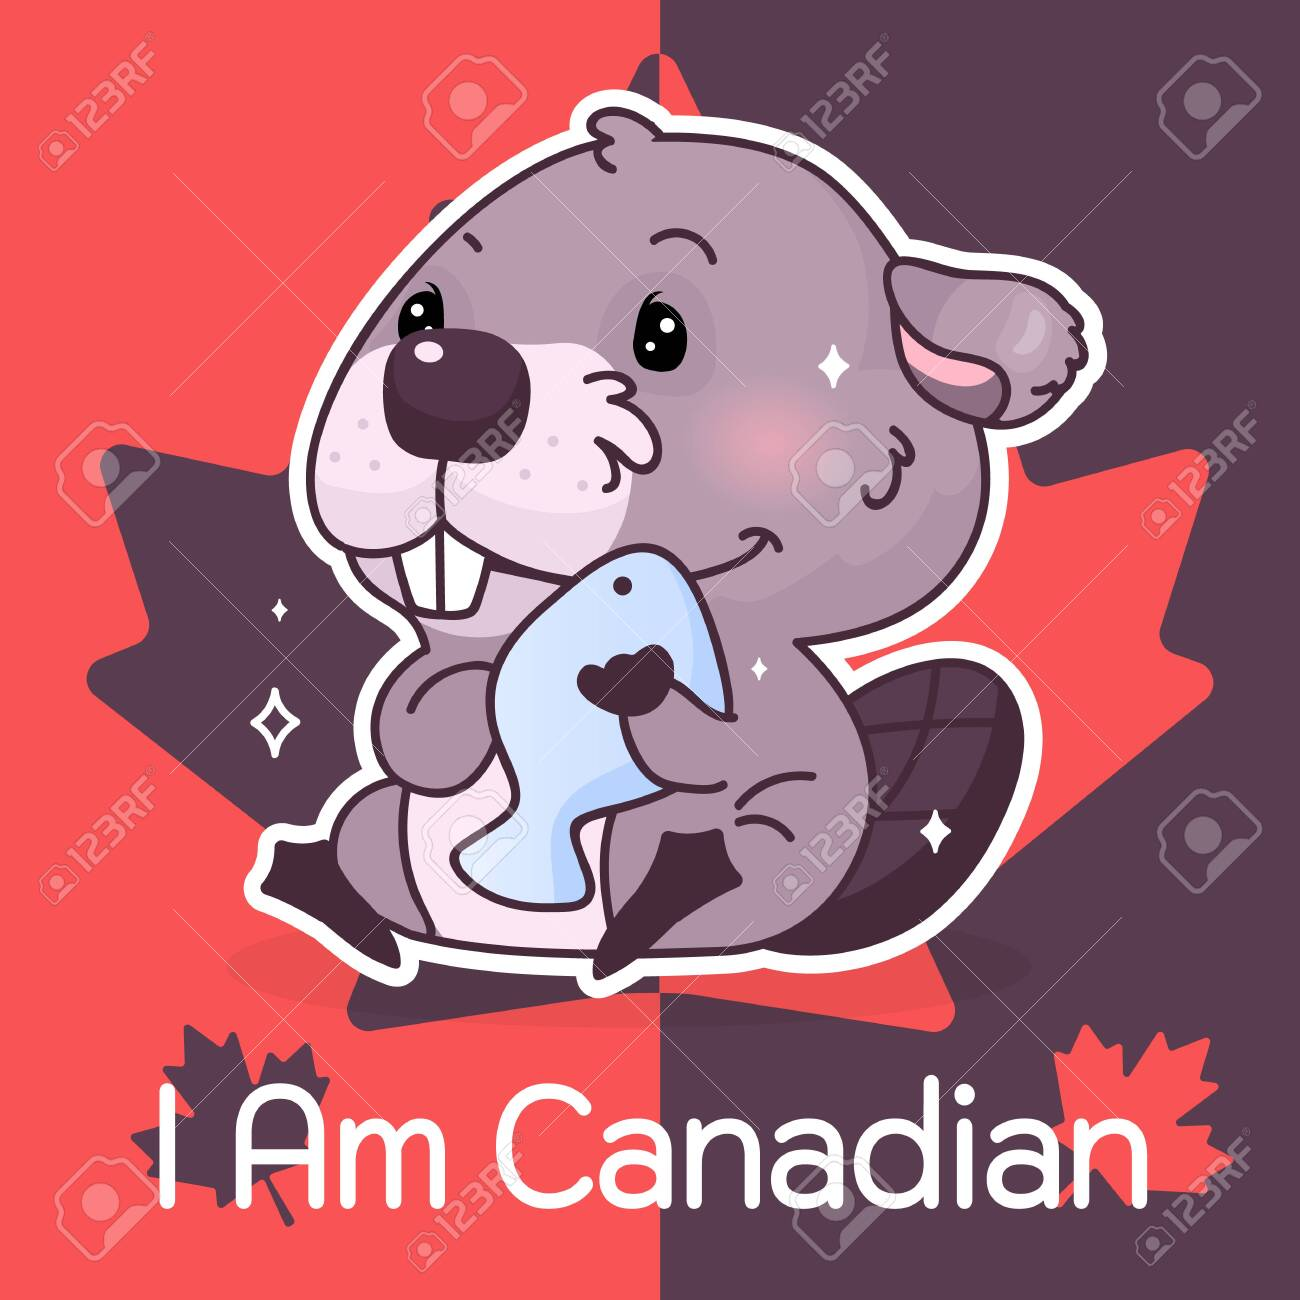 Cute beaver Canada symbol kawaii character social media post mockup. I am canadian typography. Poster, card template with mascot and maple leaves.